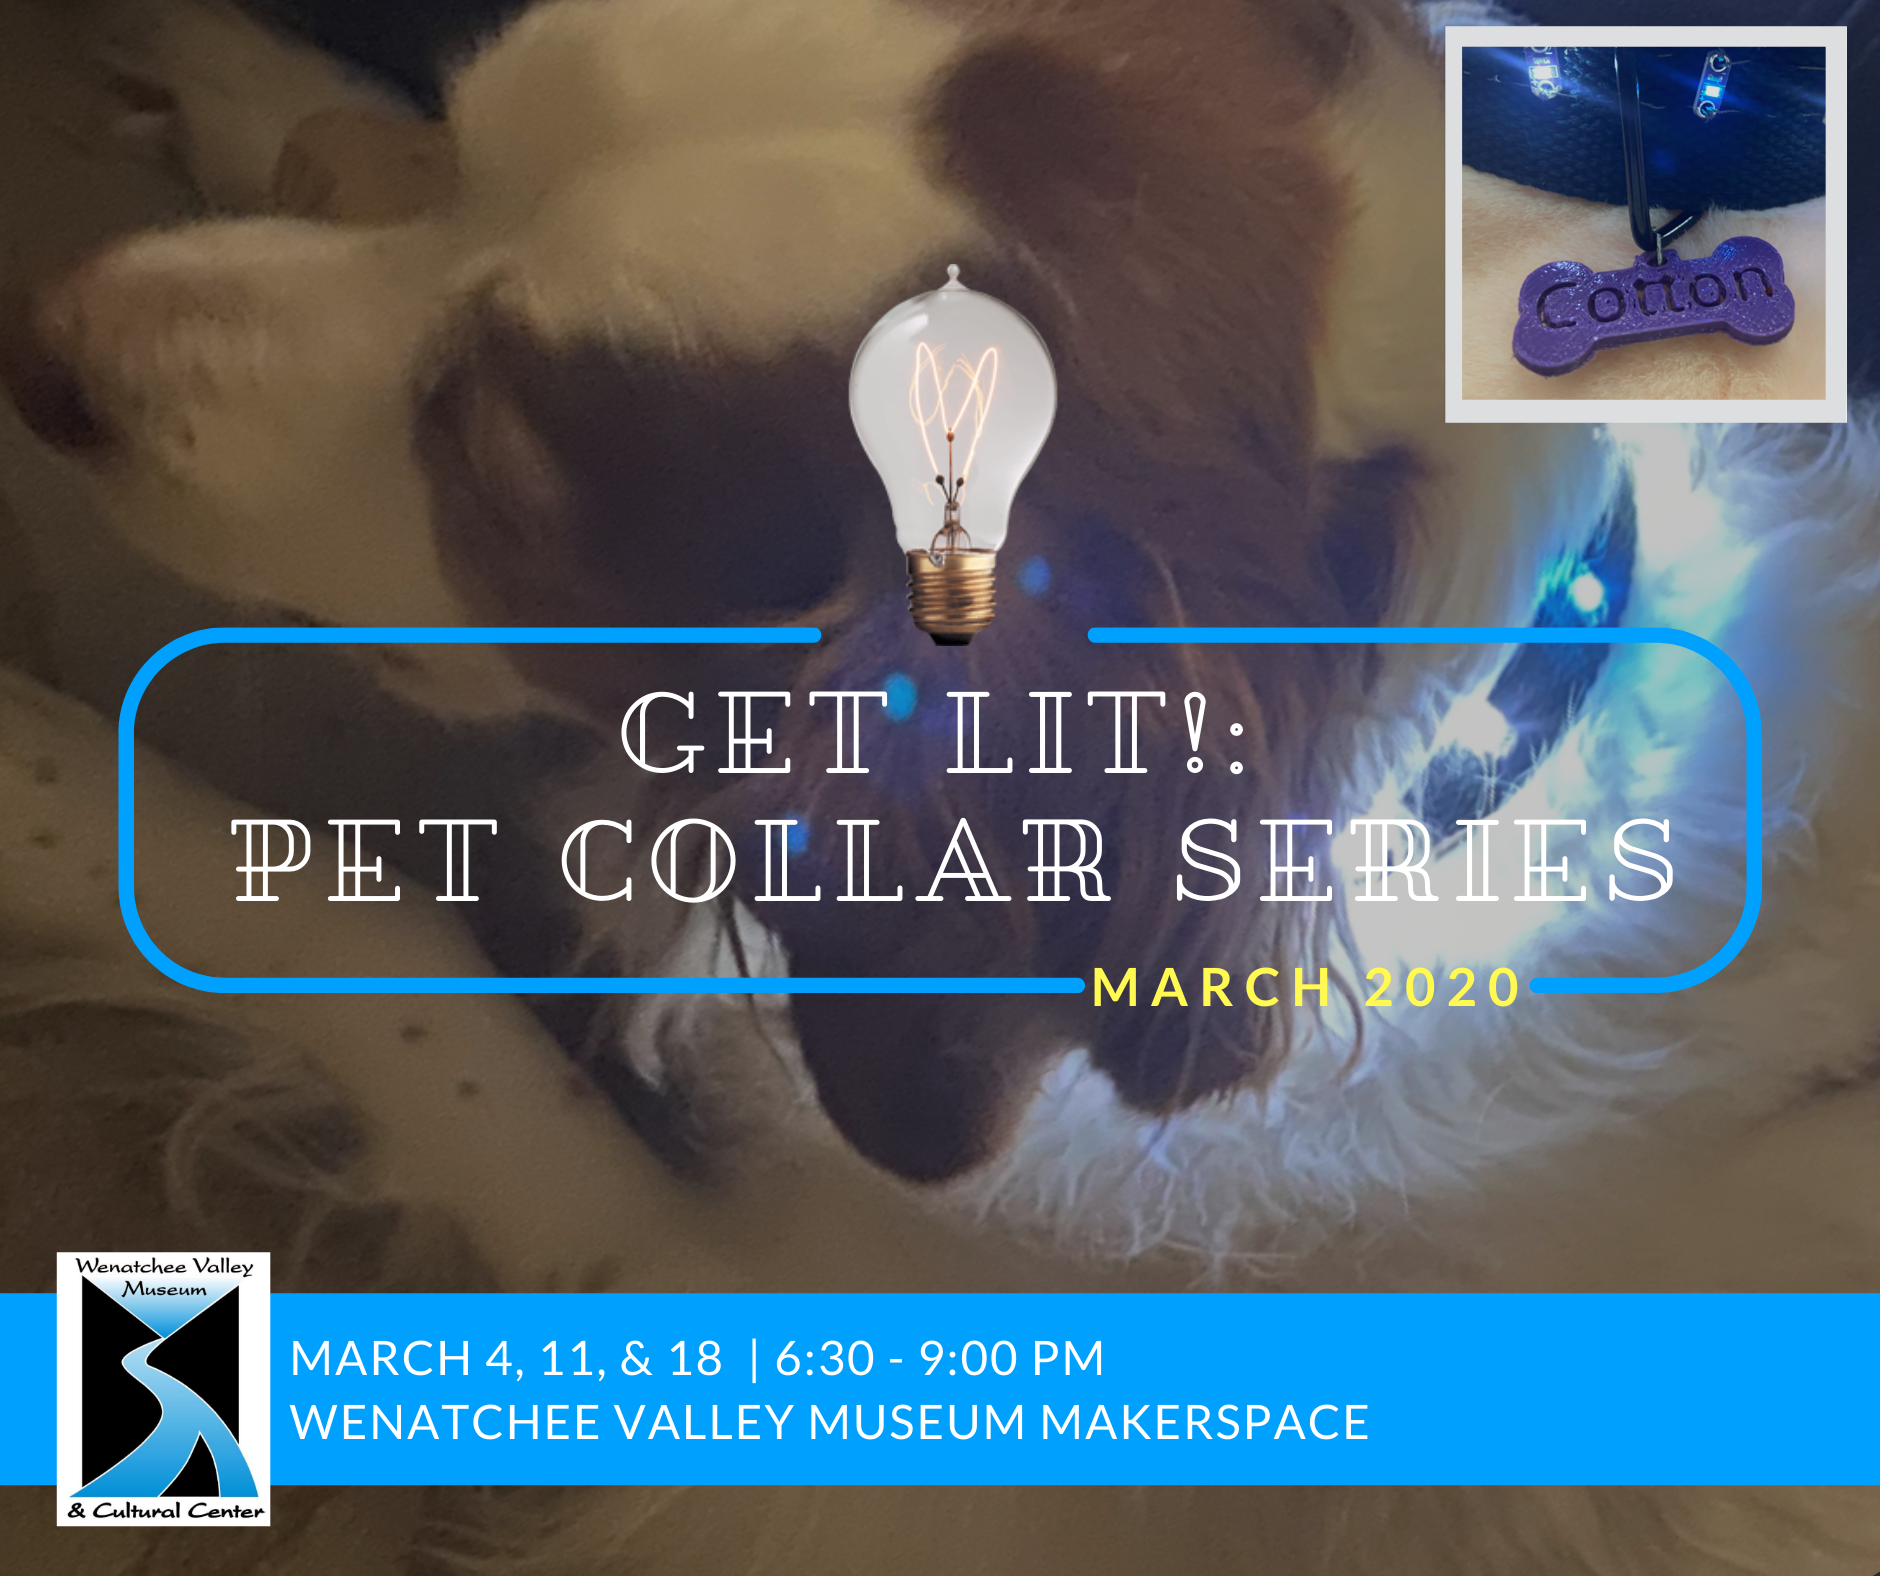 Join us for a Get Lit! Pet Collar series